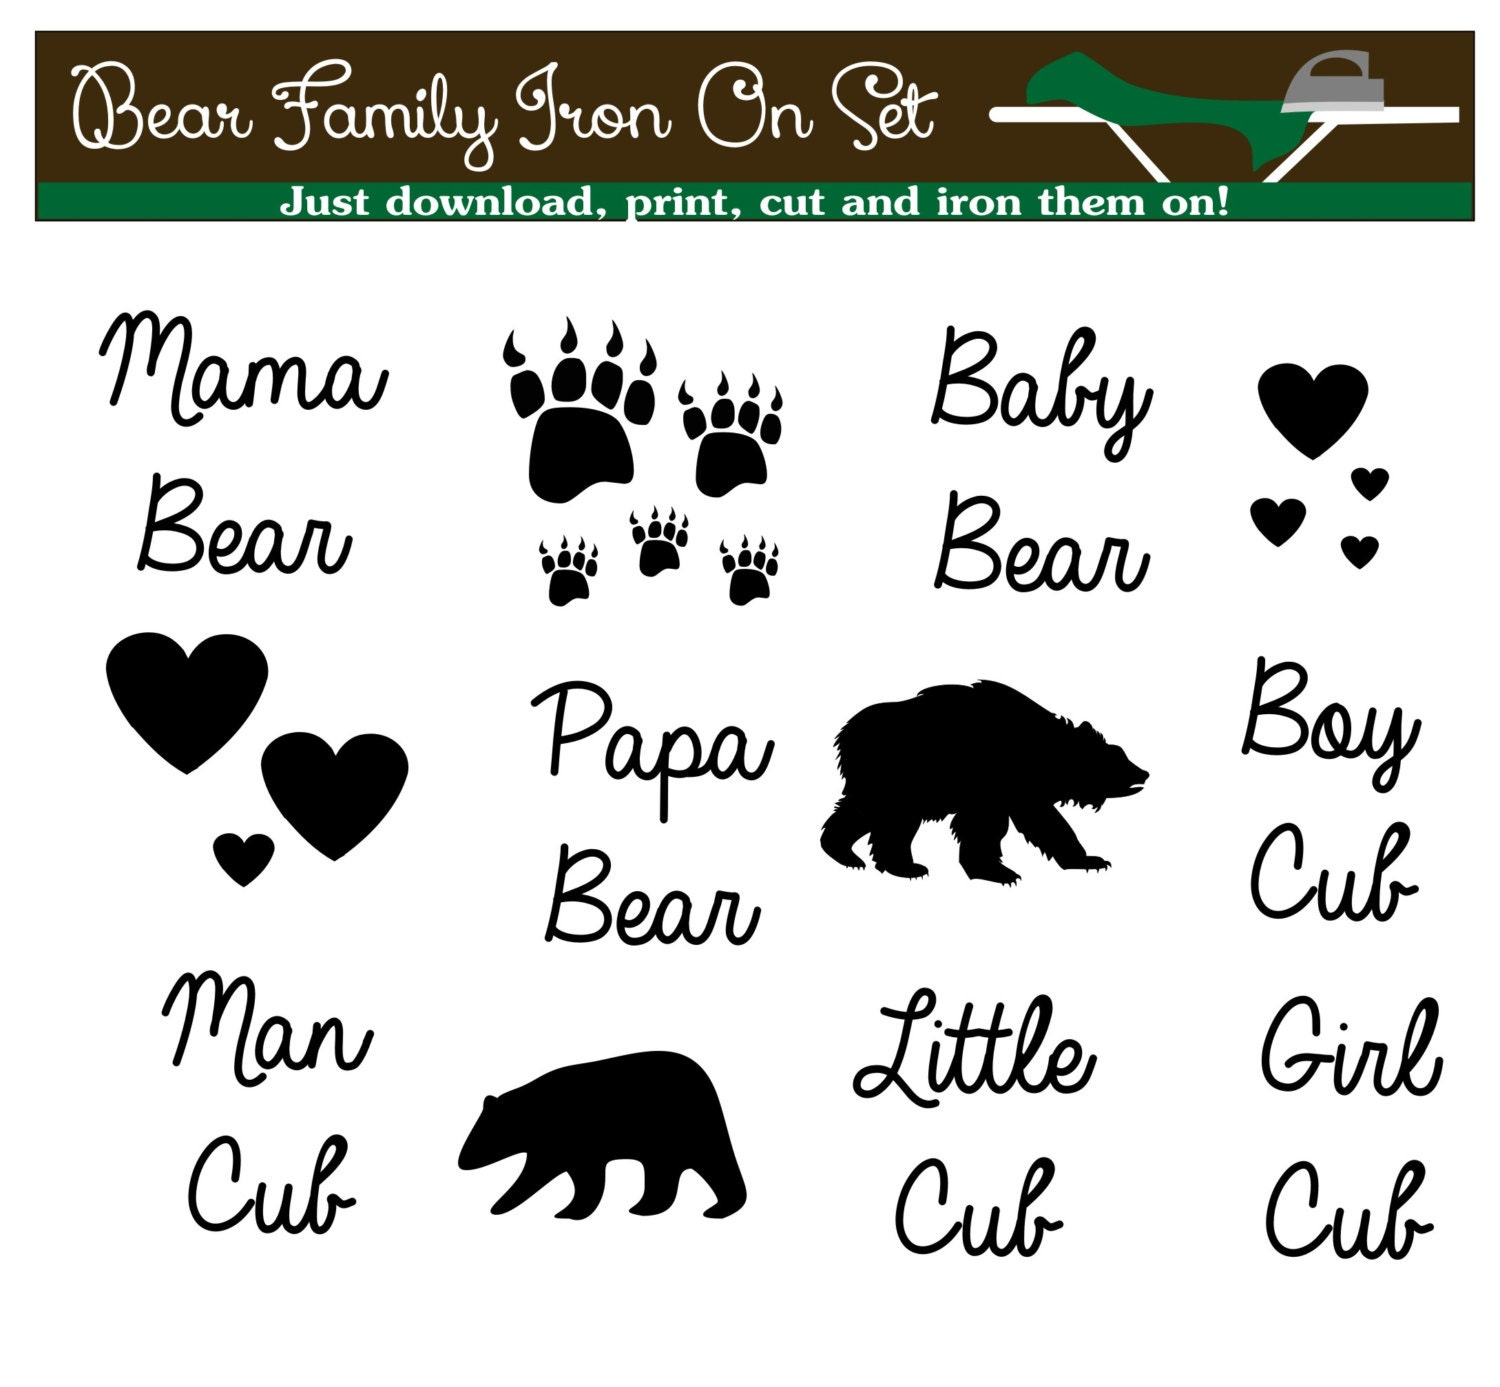 Mama Bear Tshirt Iron On Transfers Instant Download